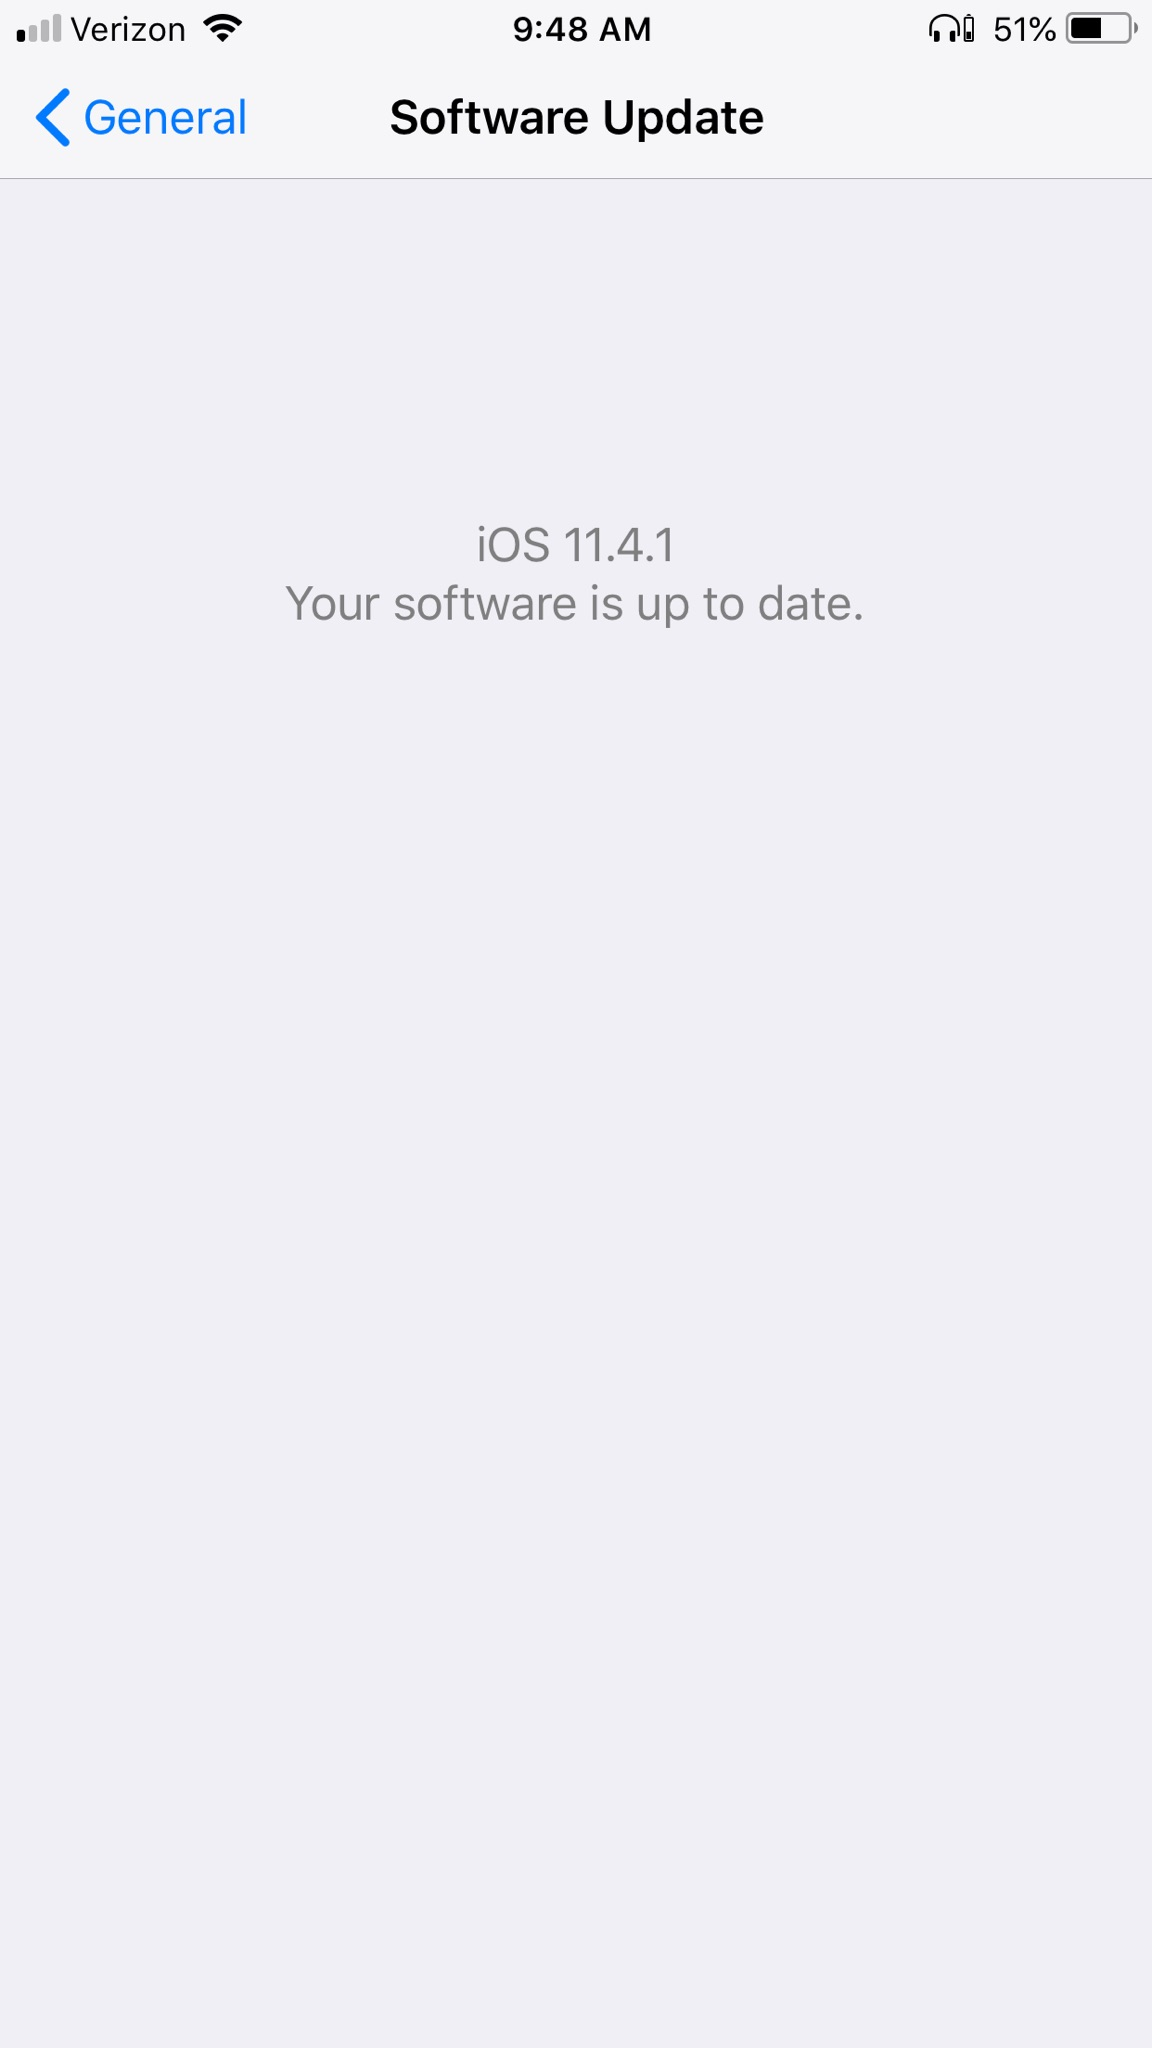 e499a1bd3f6 Could you confirm what version of the Bose connect app and what version iOS  you are running?